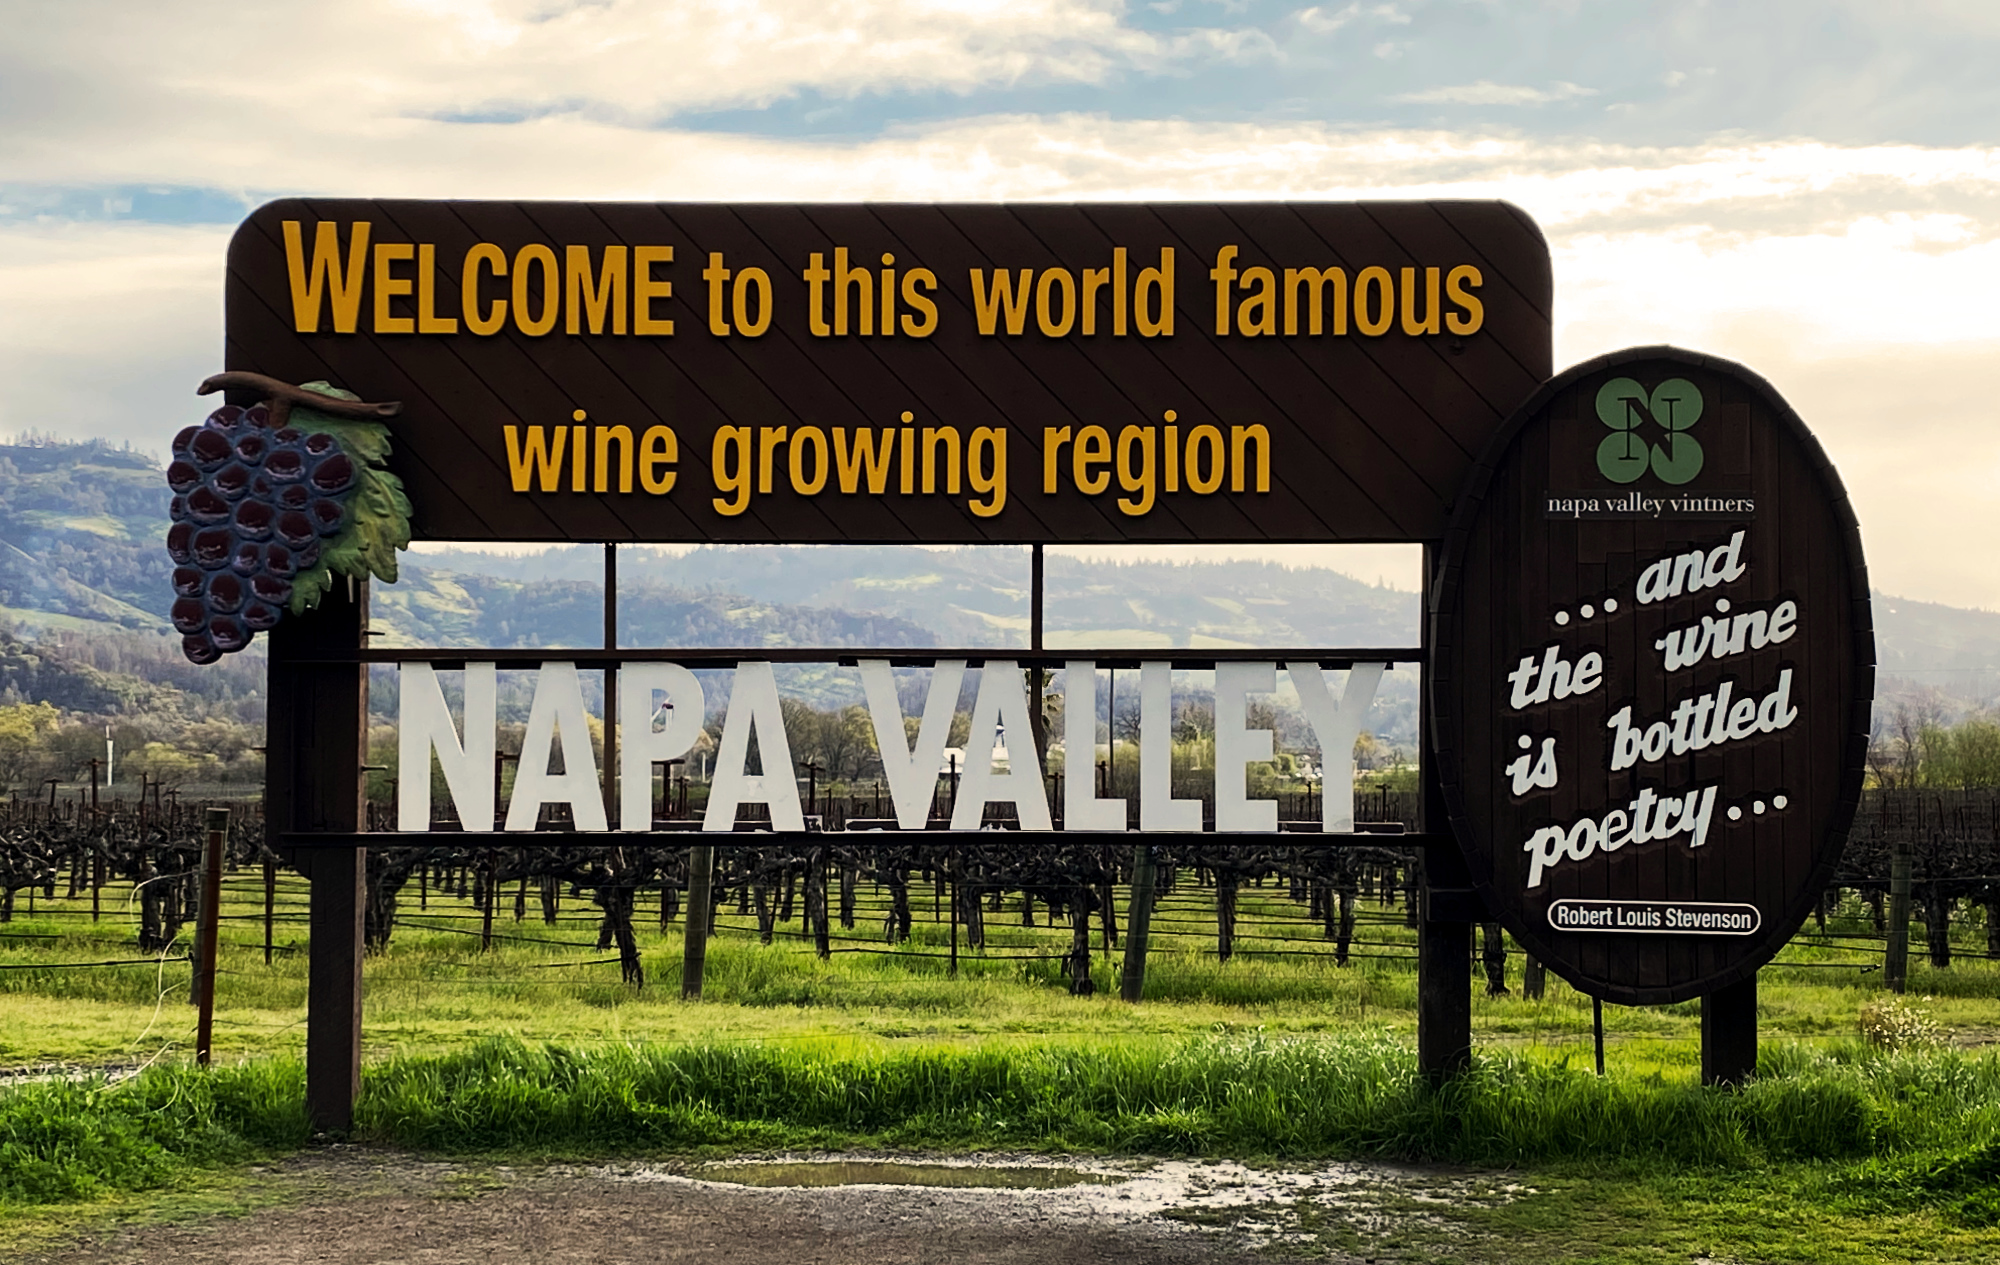 Napa Valley Vineyard Estate & Boutique High-End Profitable Wine Brand